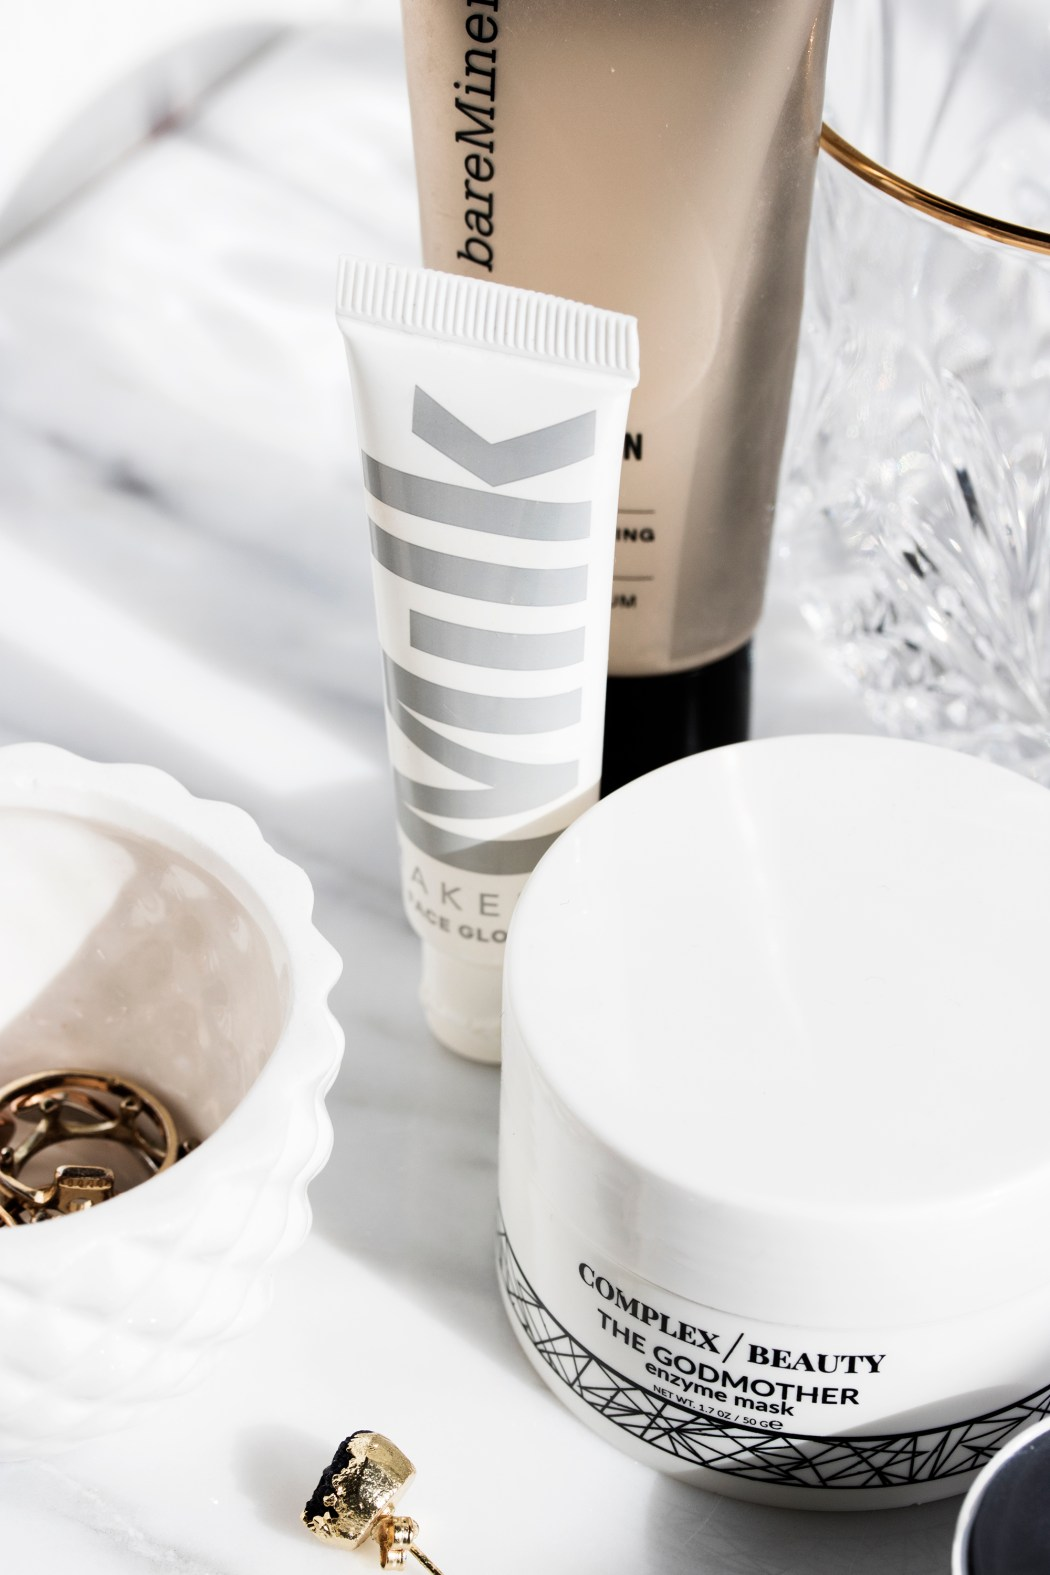 skincare and makeup products that leave the skin dewy, glowy, and fresh